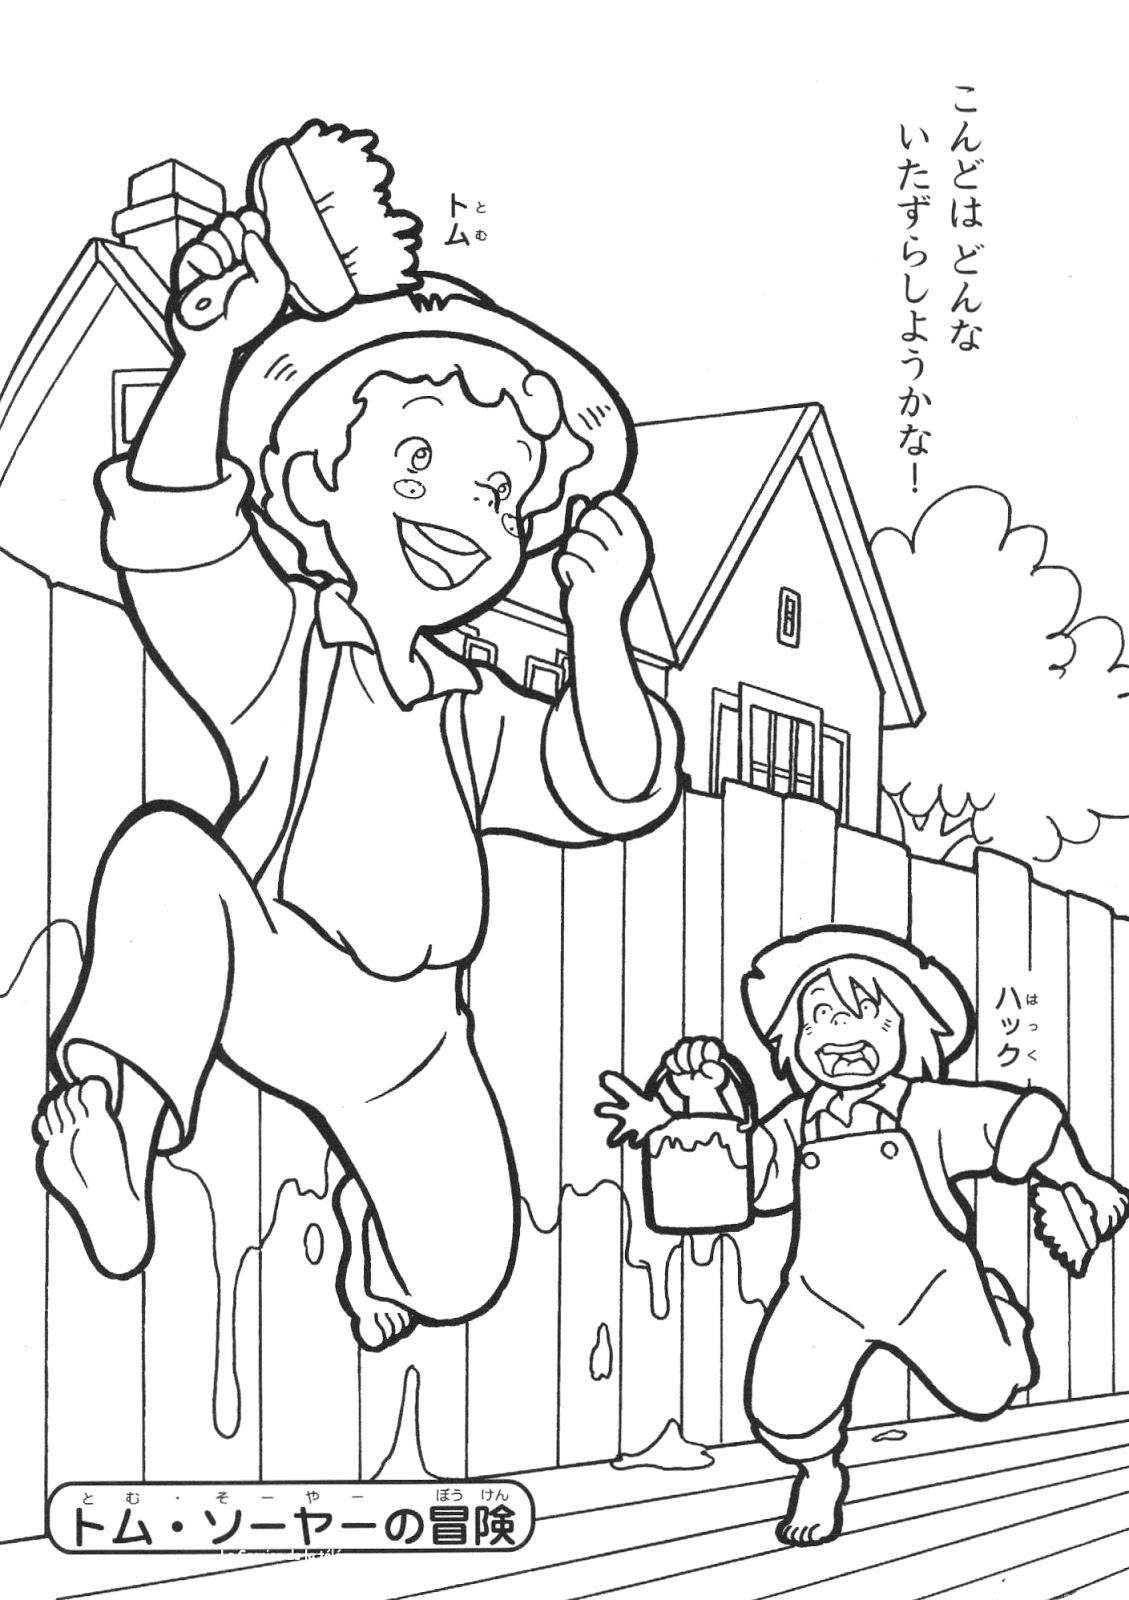 The best free Sawyer coloring page images. Download from